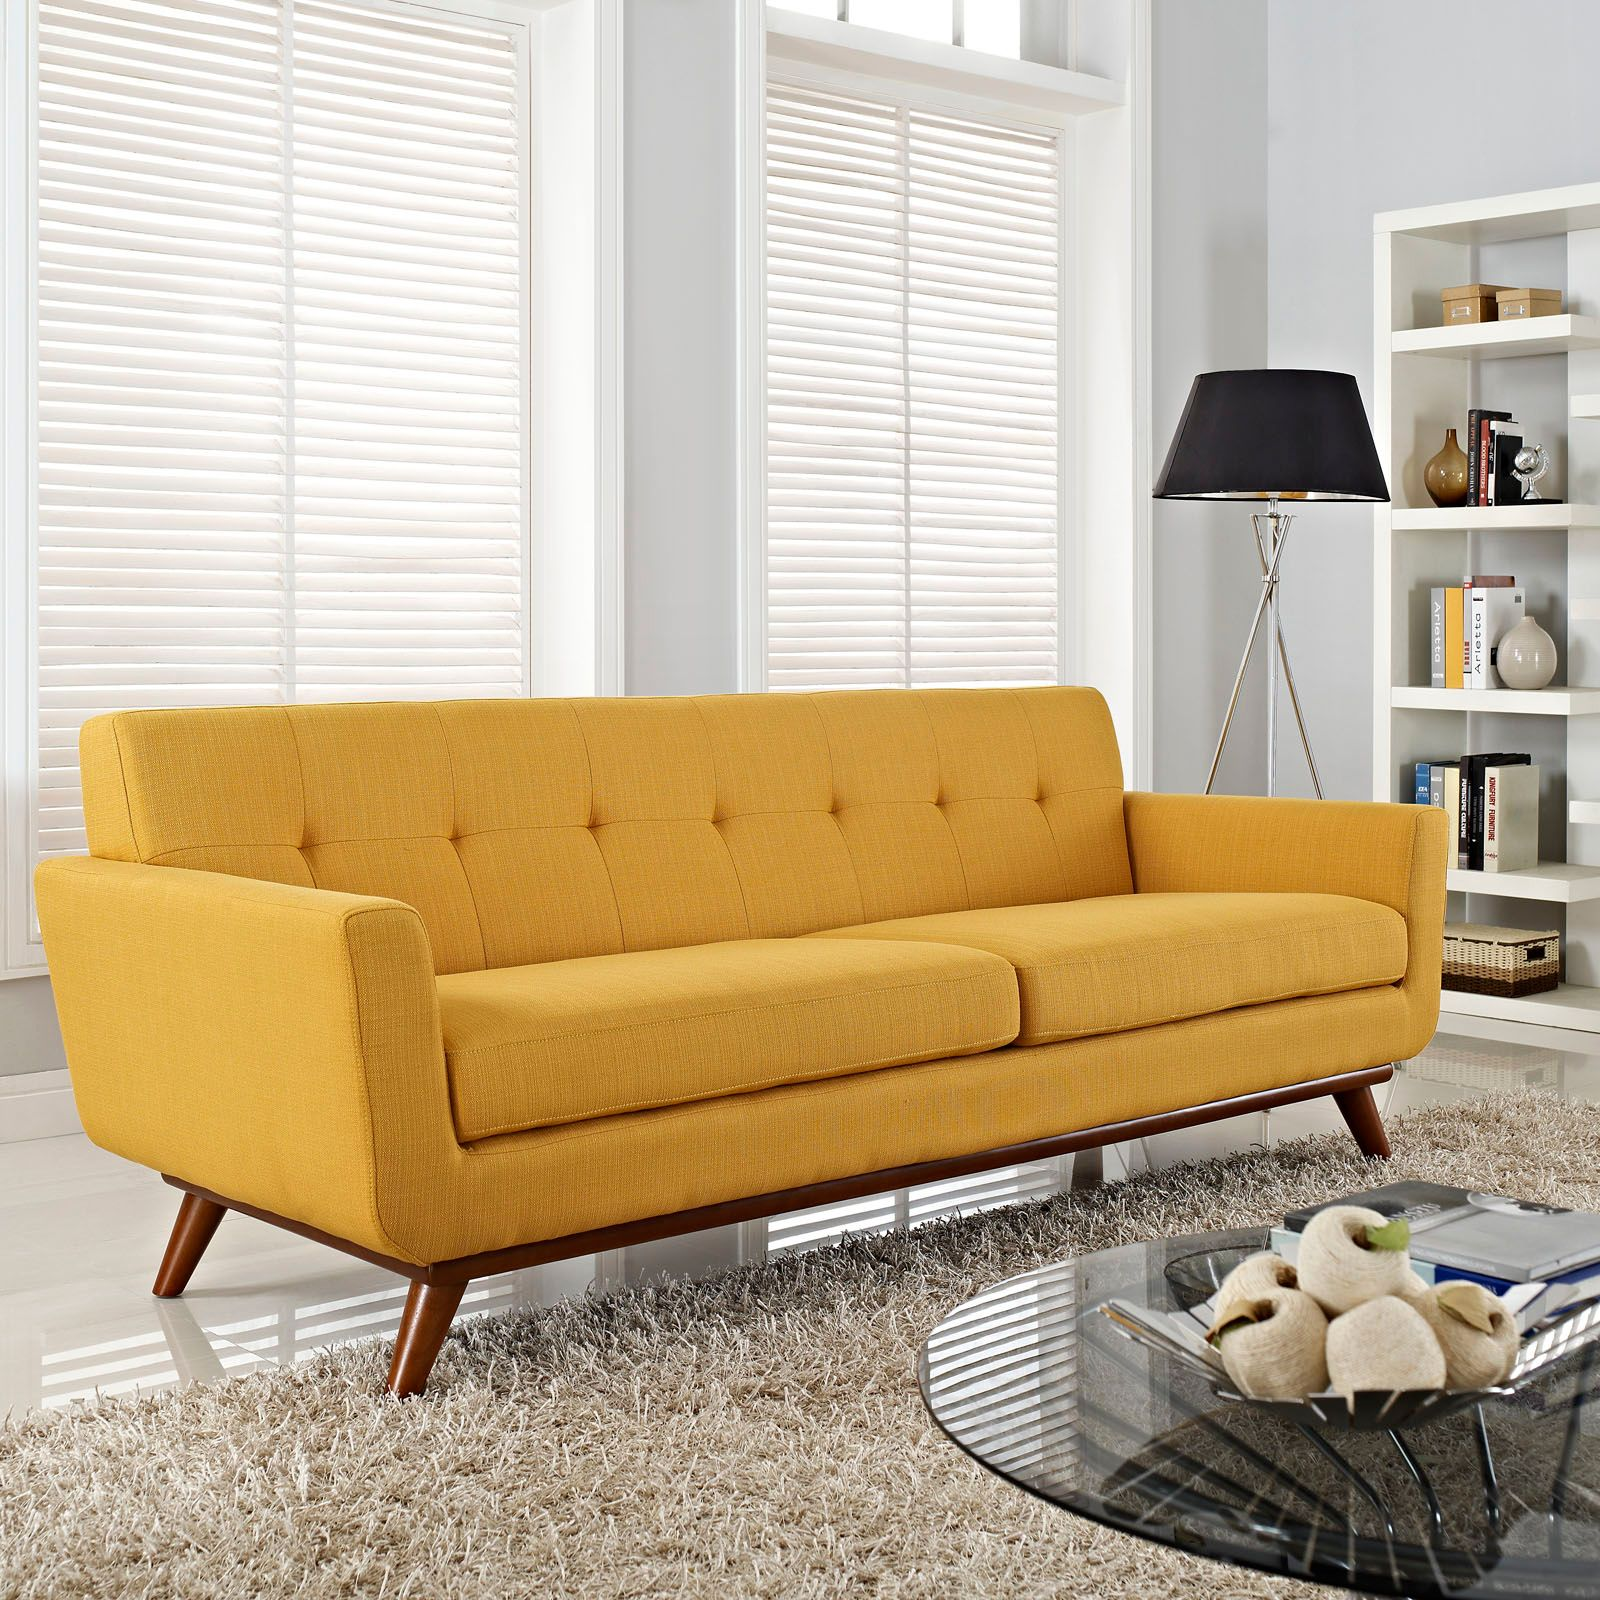 Spiers Sofa in Mustard - Unique Modern Furniture - Dot & Bo | HOME ...